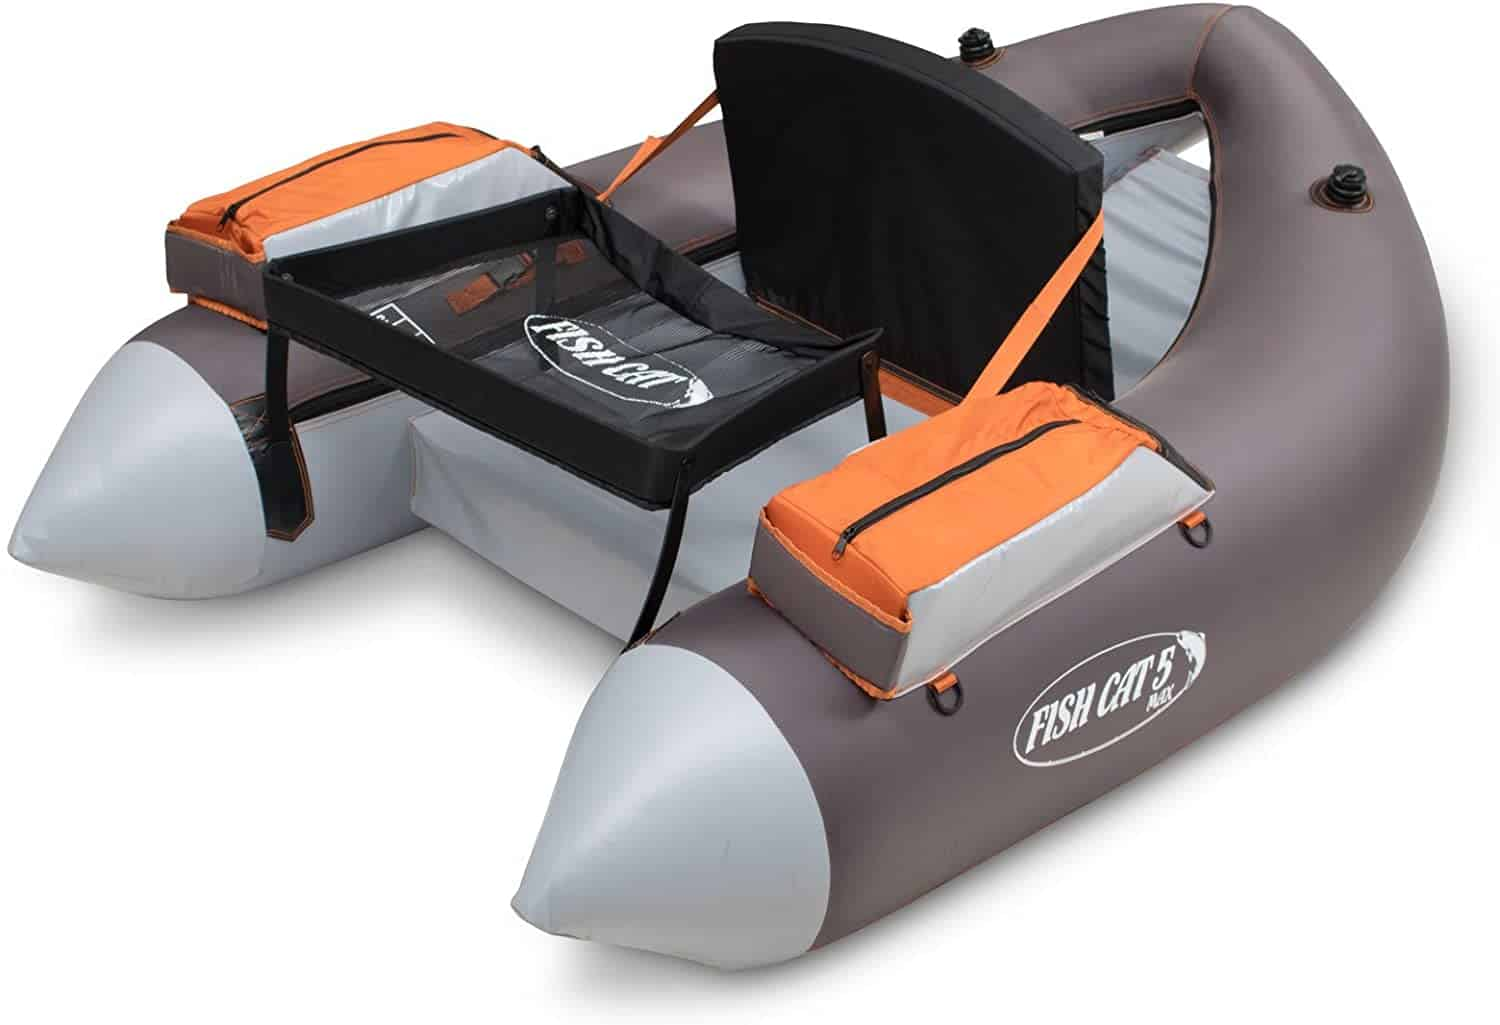 Fish Cat 5 Max Float Tube by Outcast Boats